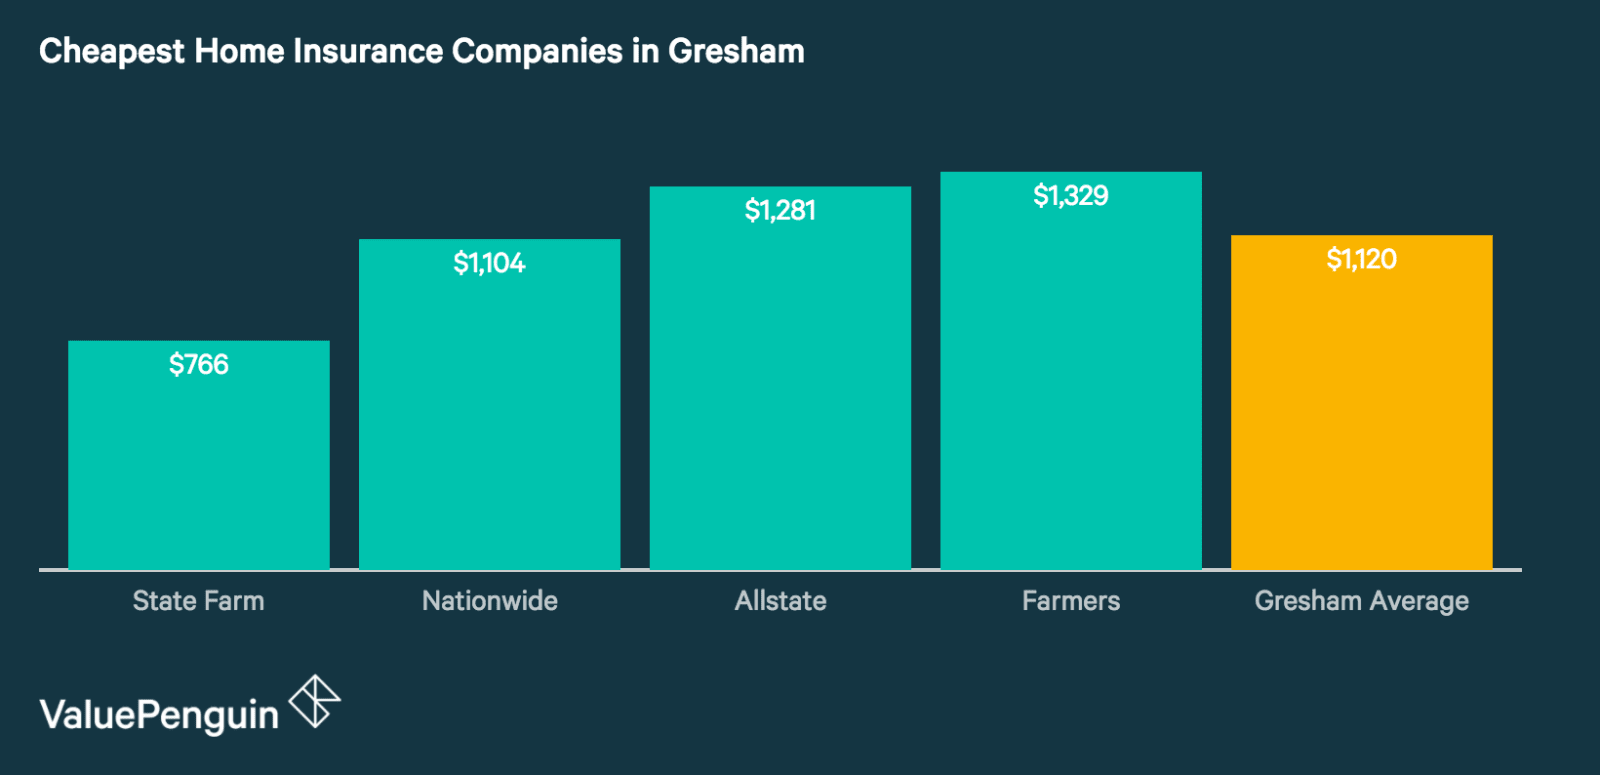 Gresham's Best Home Insurance Companies